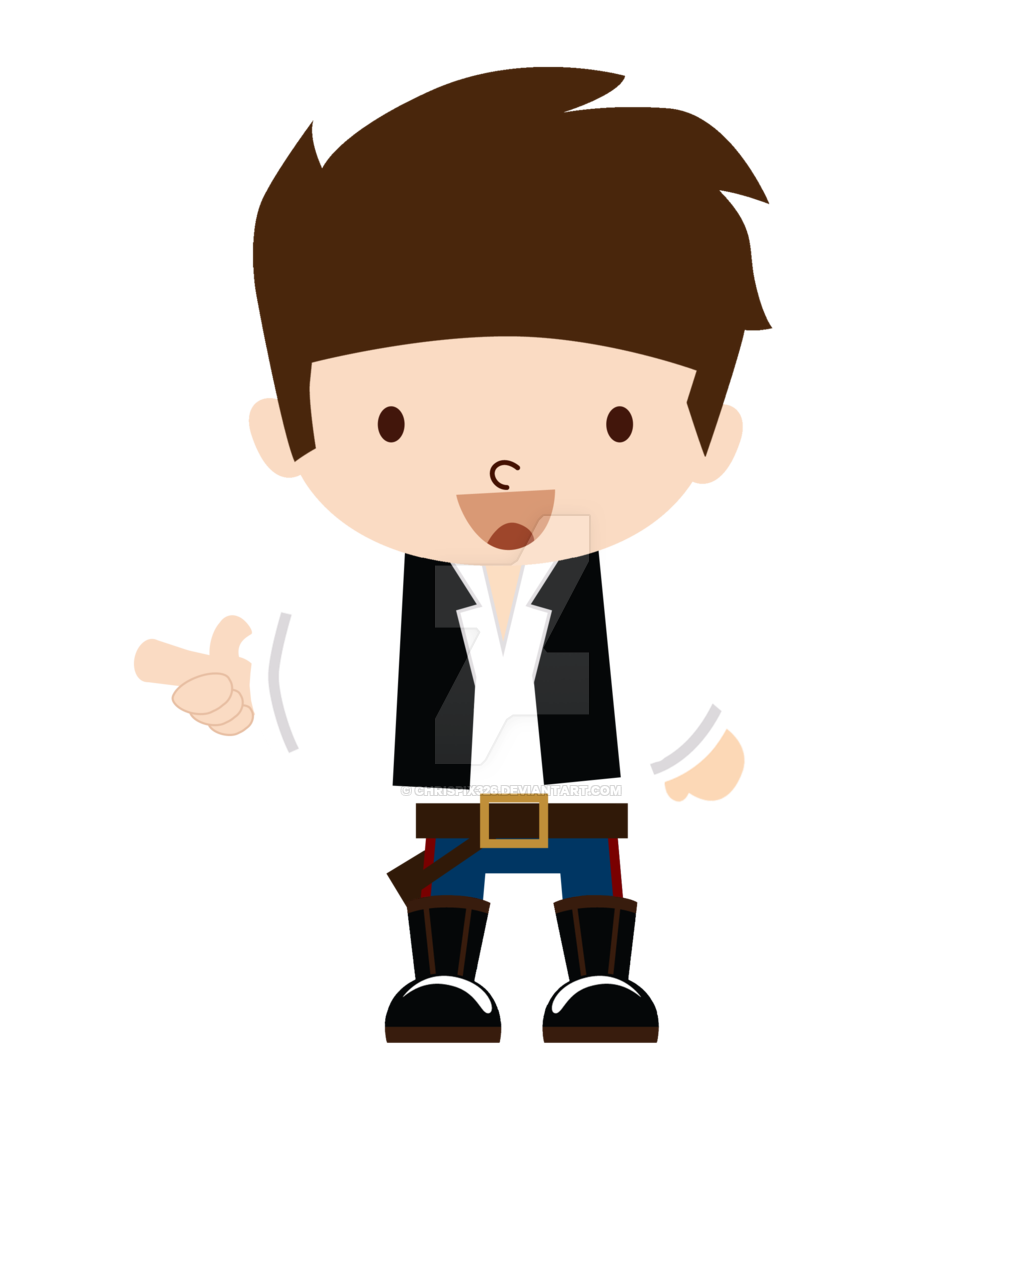 1024x1280 Luke Skywalker Clipart Han Solo